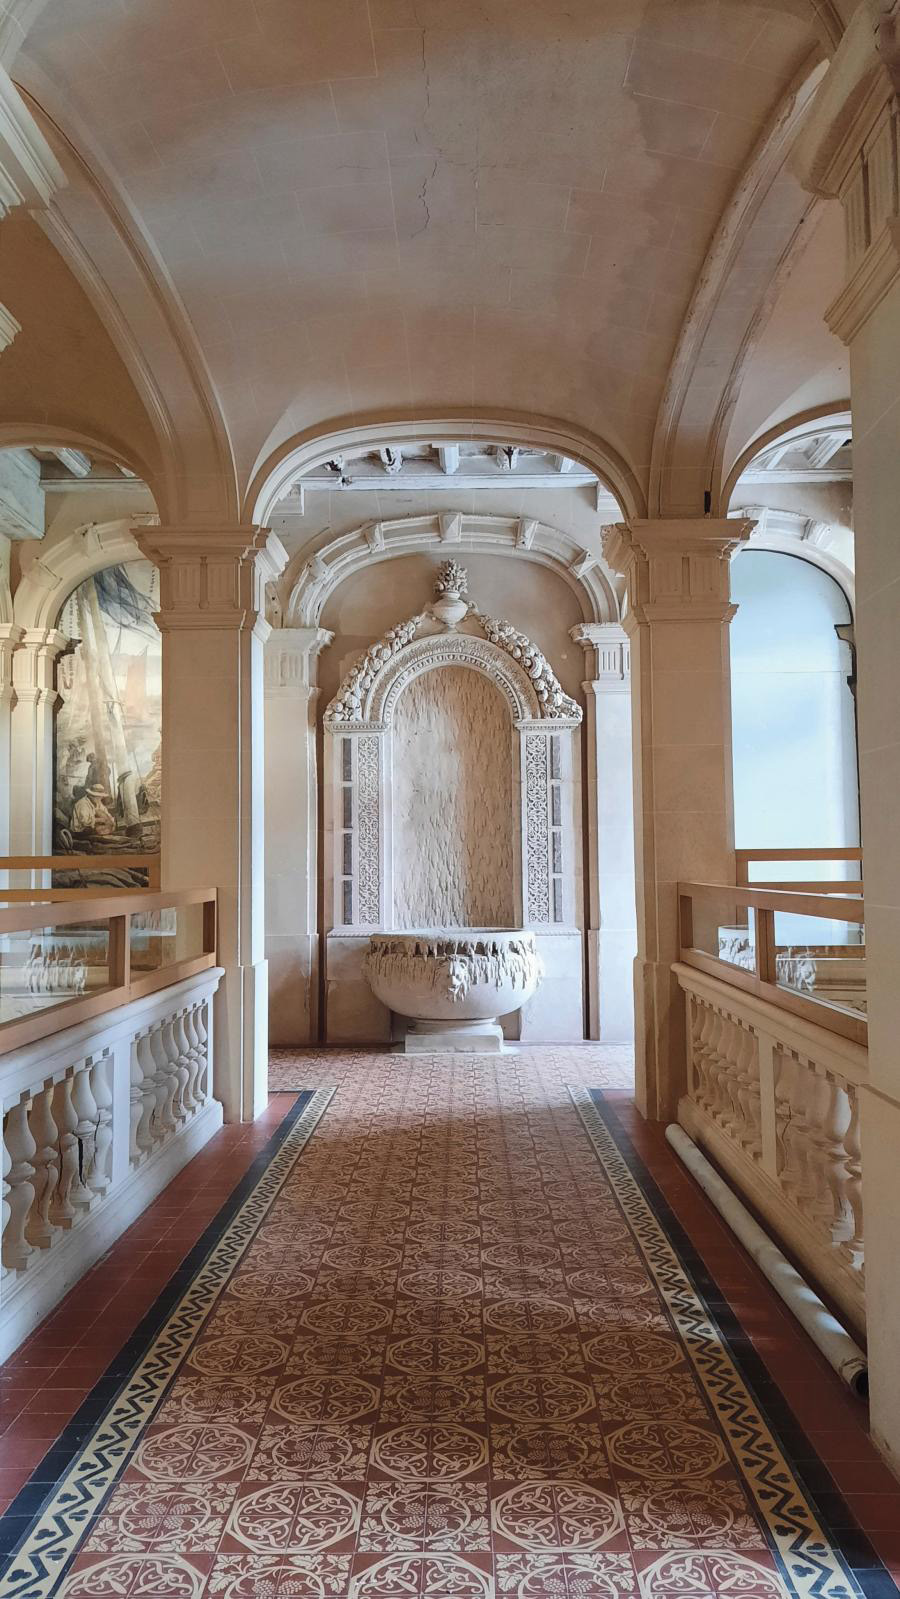 Grand Staircase of Honour© G. M.